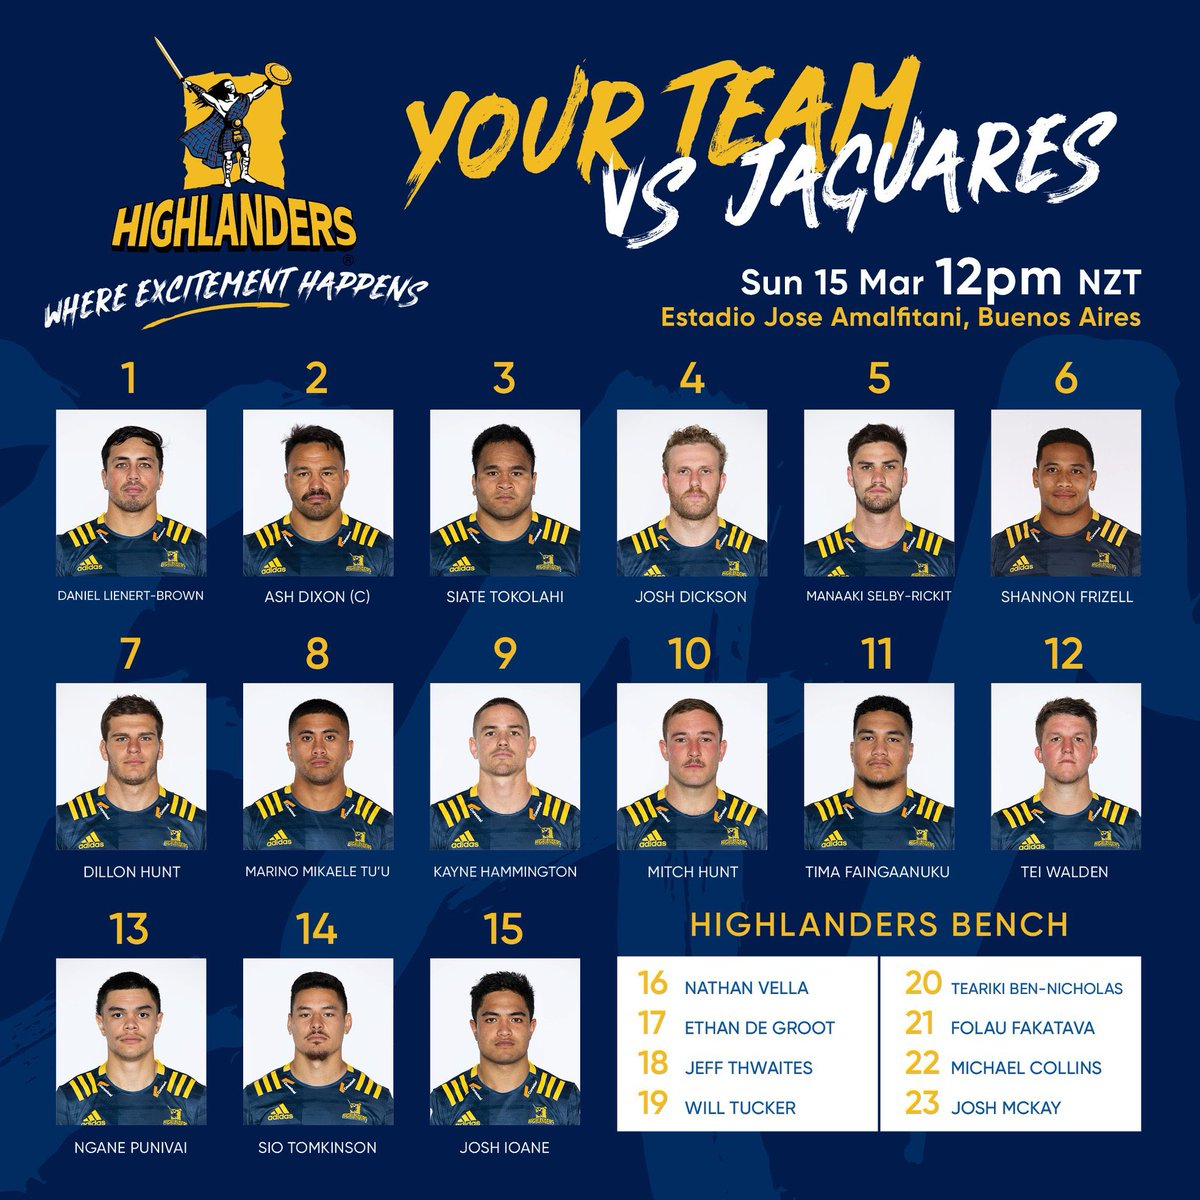 🚨TEAM ANNOUNCEMENT 🚨 Your Landers side to take the @JaguaresARG in Buenos Aires on Sunday! Kick off 12pm (NZT) Tune in to @skysportnz for coverage #WhereExcitementHappens #JAGvHIG #landersontour